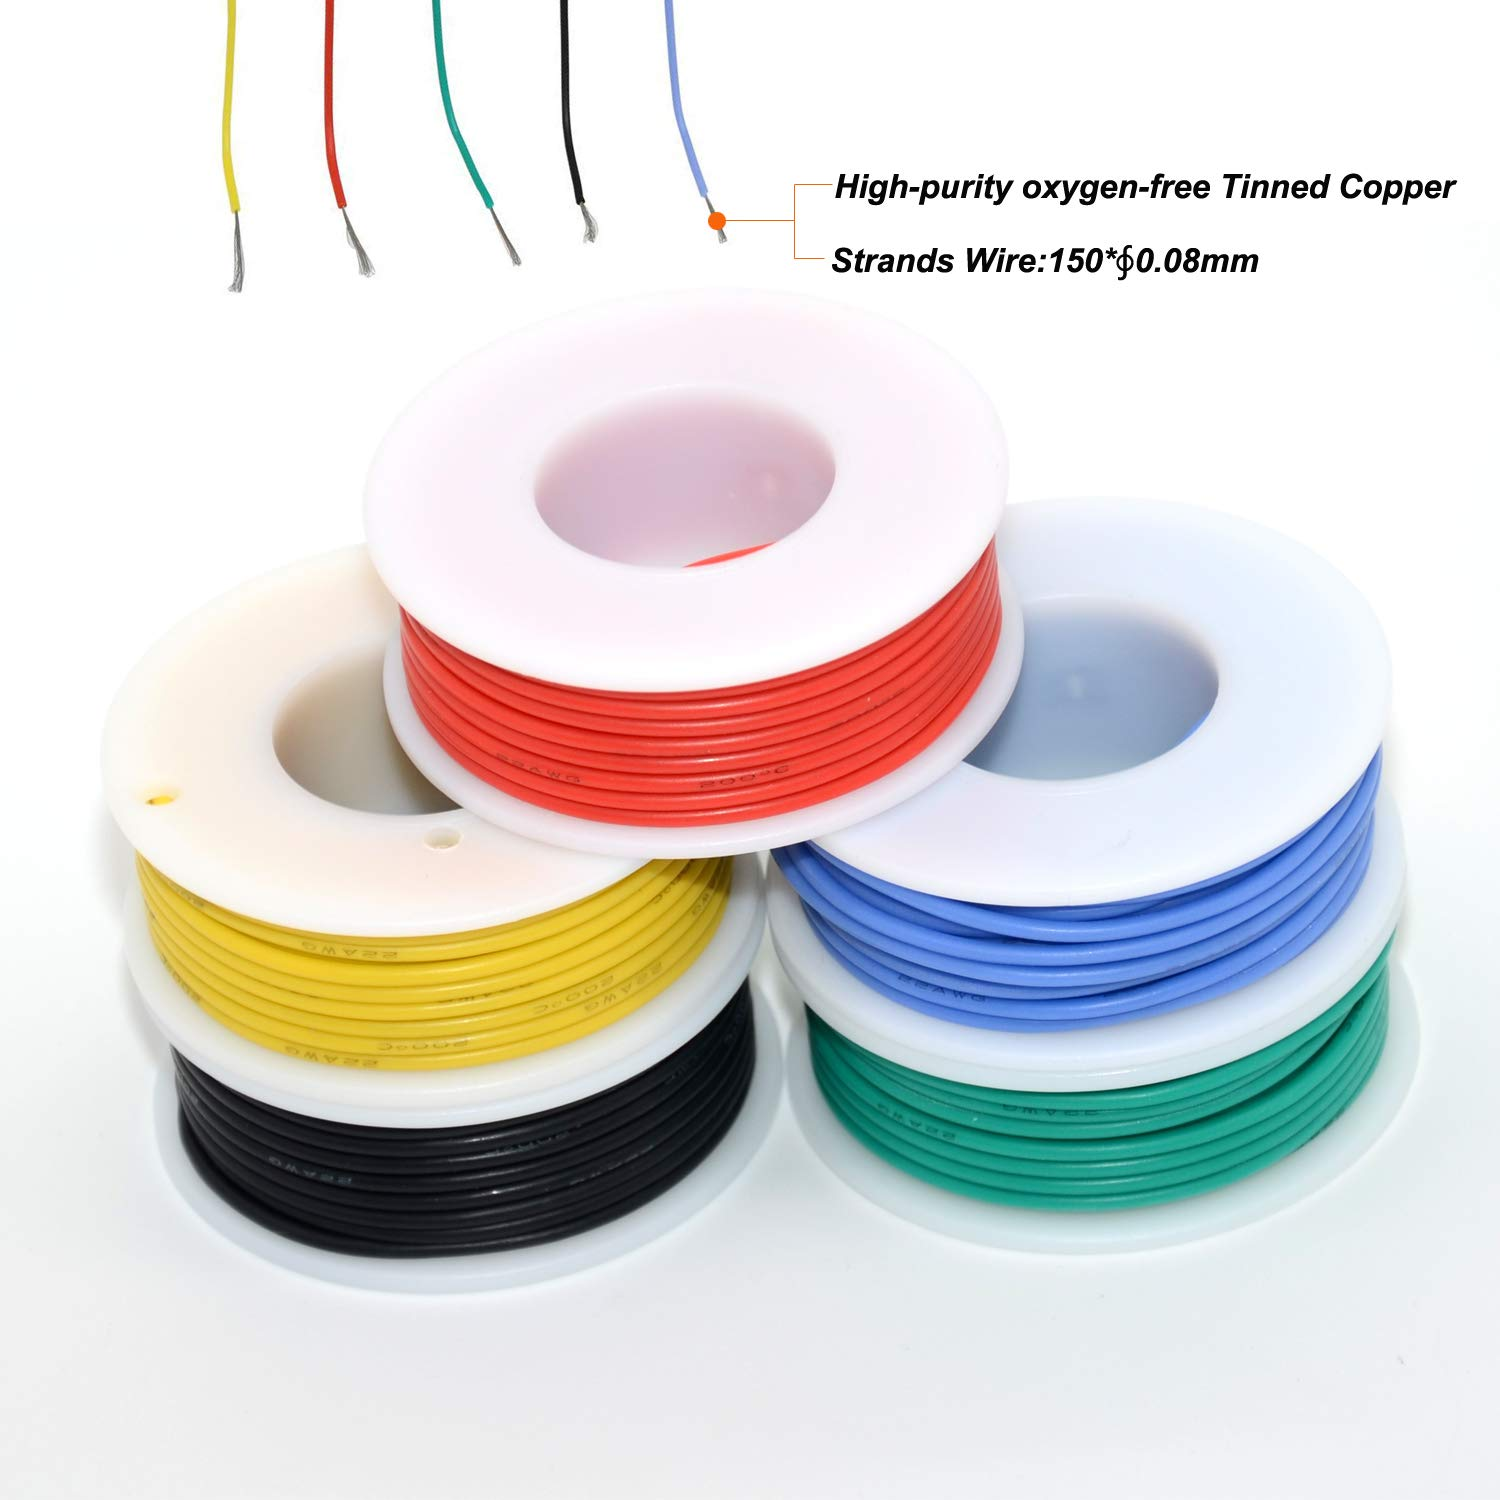 24 awg Silicone Electrical wire Cable 5 Colors 24 gauge HookUp wires electronics kit stranded Tinned Copper wire Flexible and soft for DIY 29.5ft each